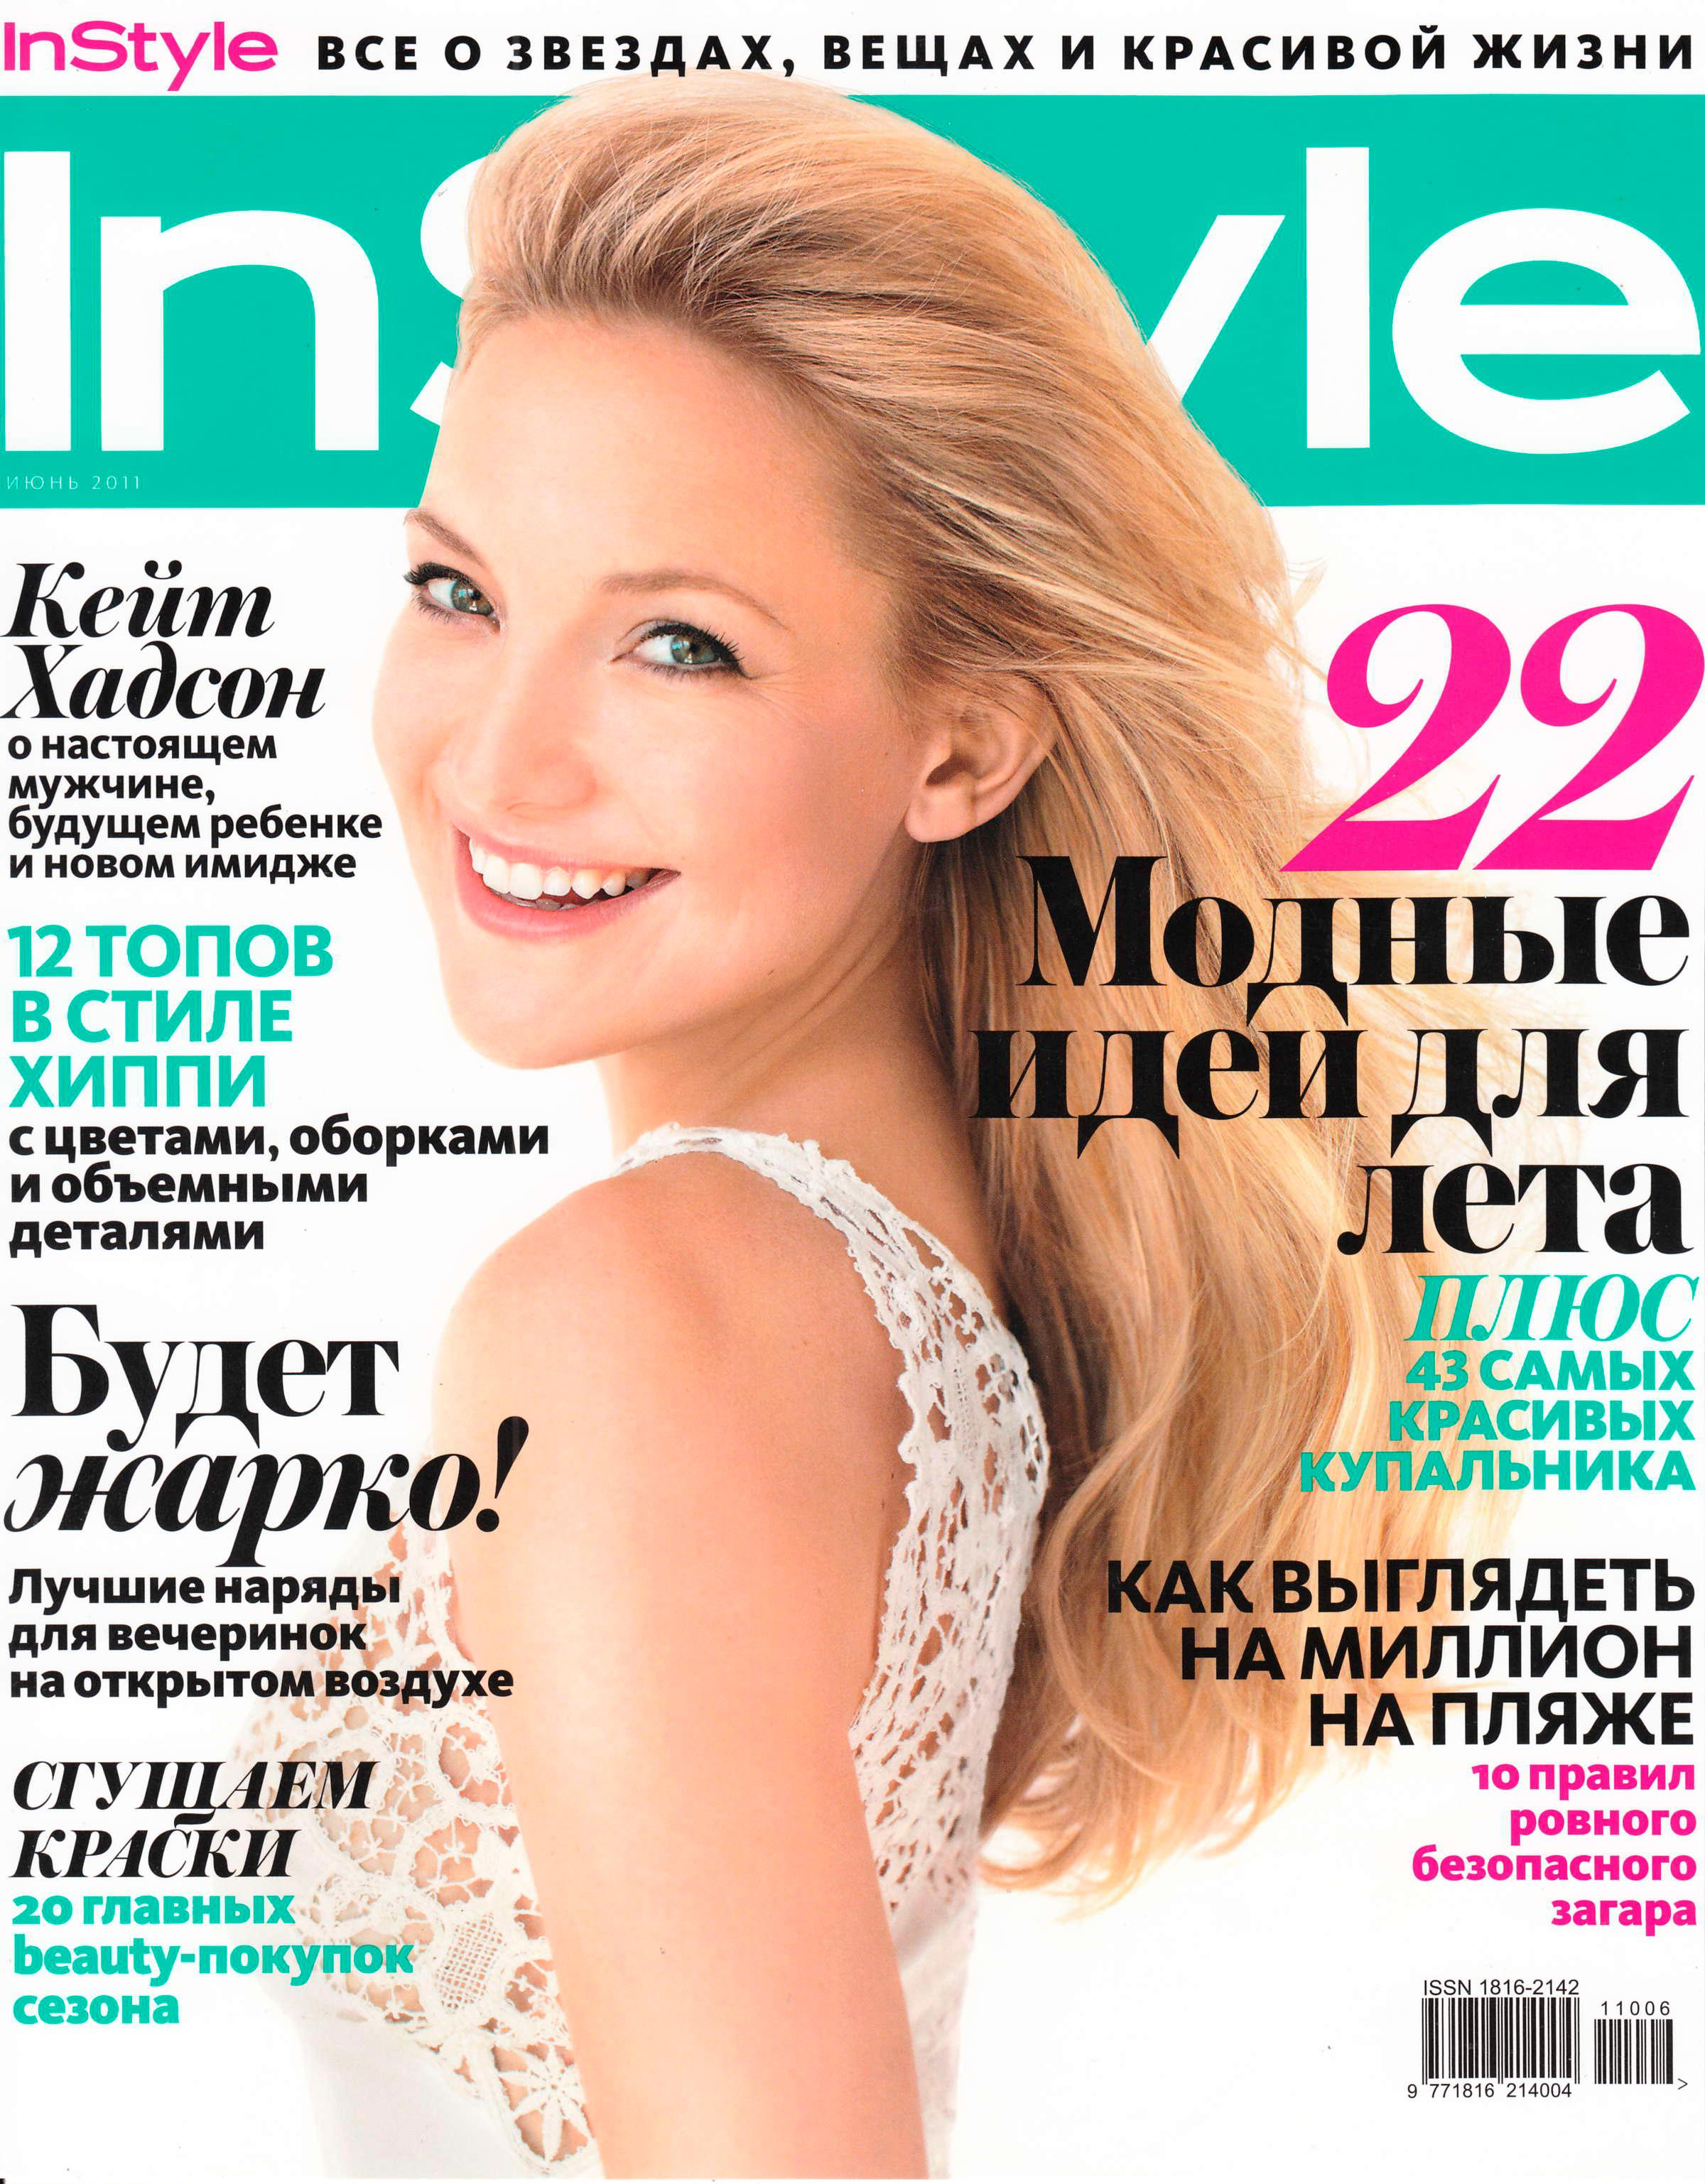 InStyle No.6 Russia – June 2011